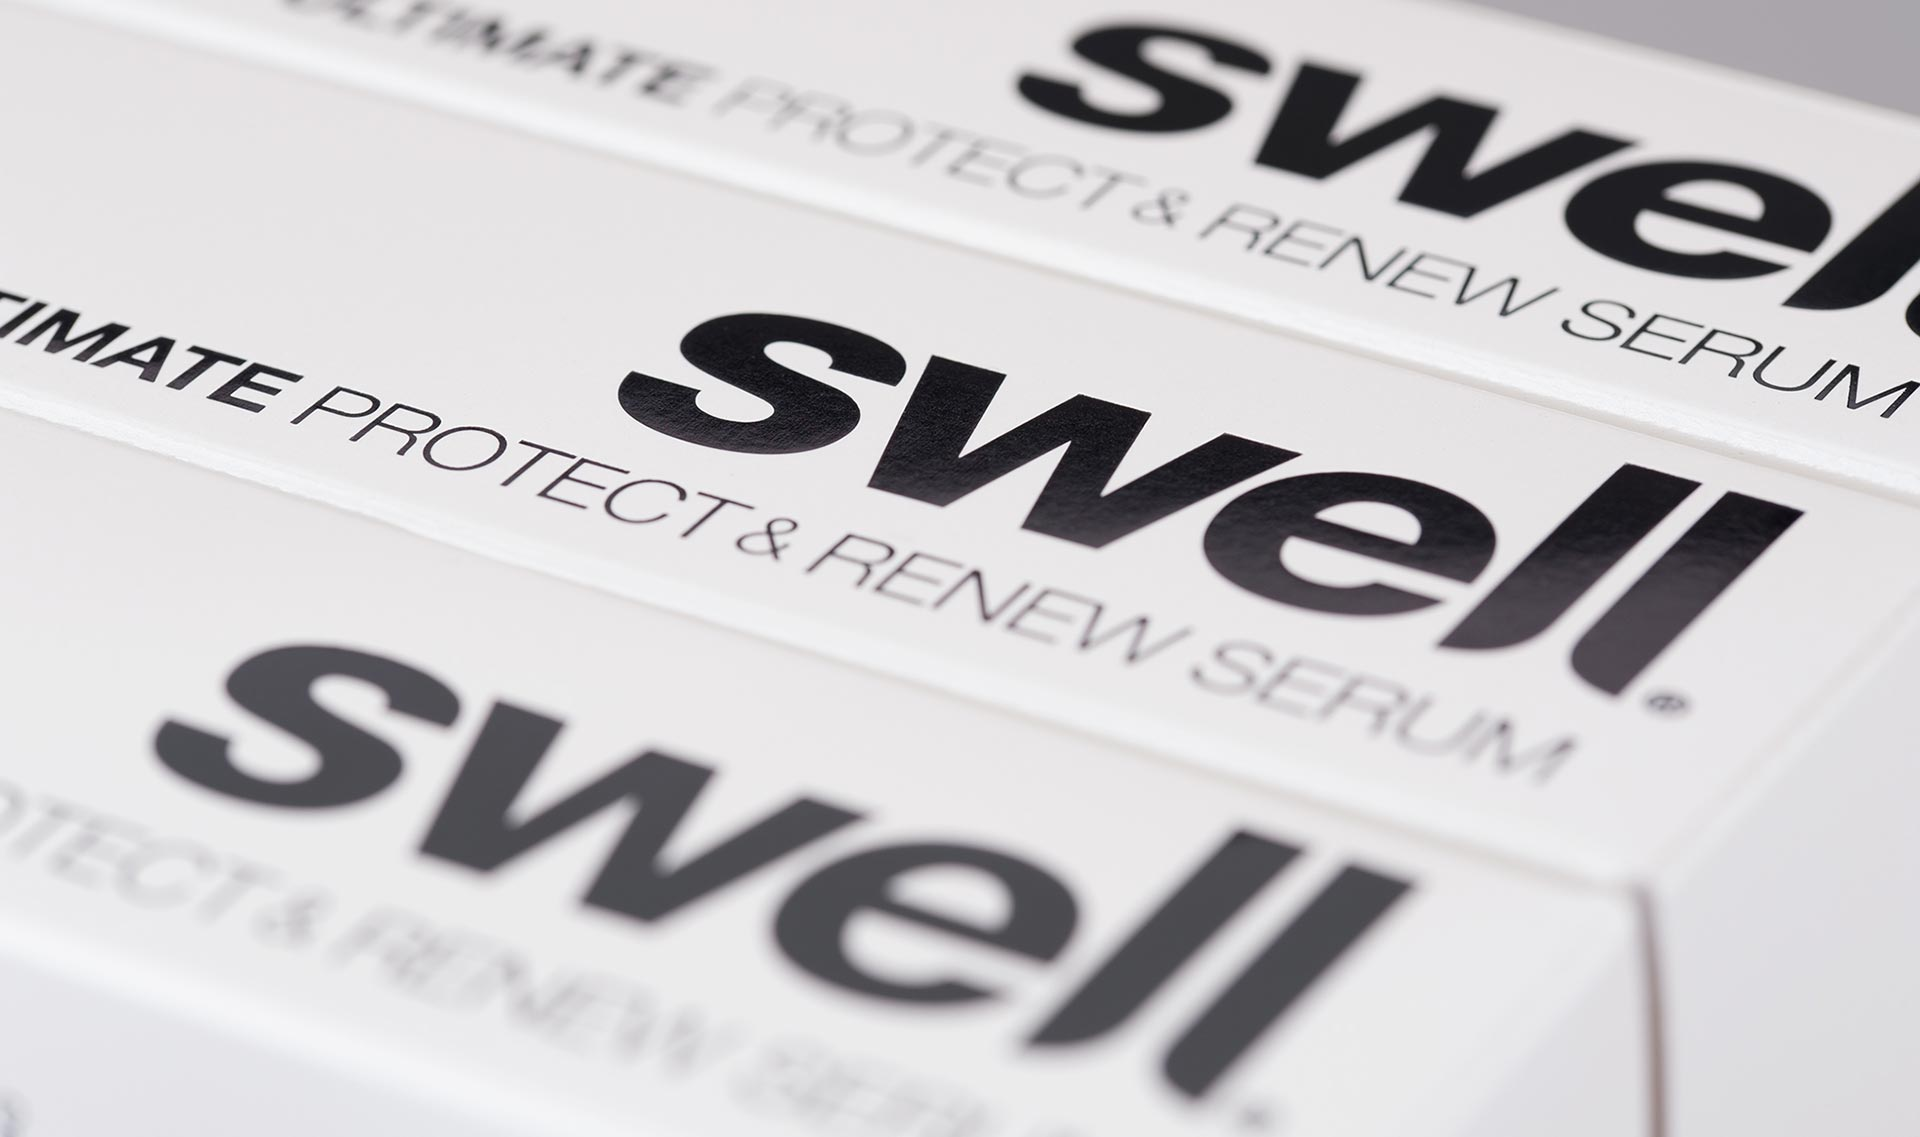 Haircare packaging design for Swell Hair. Protect & Renew Serum carton. Packaging design agency - Flipflop Design.